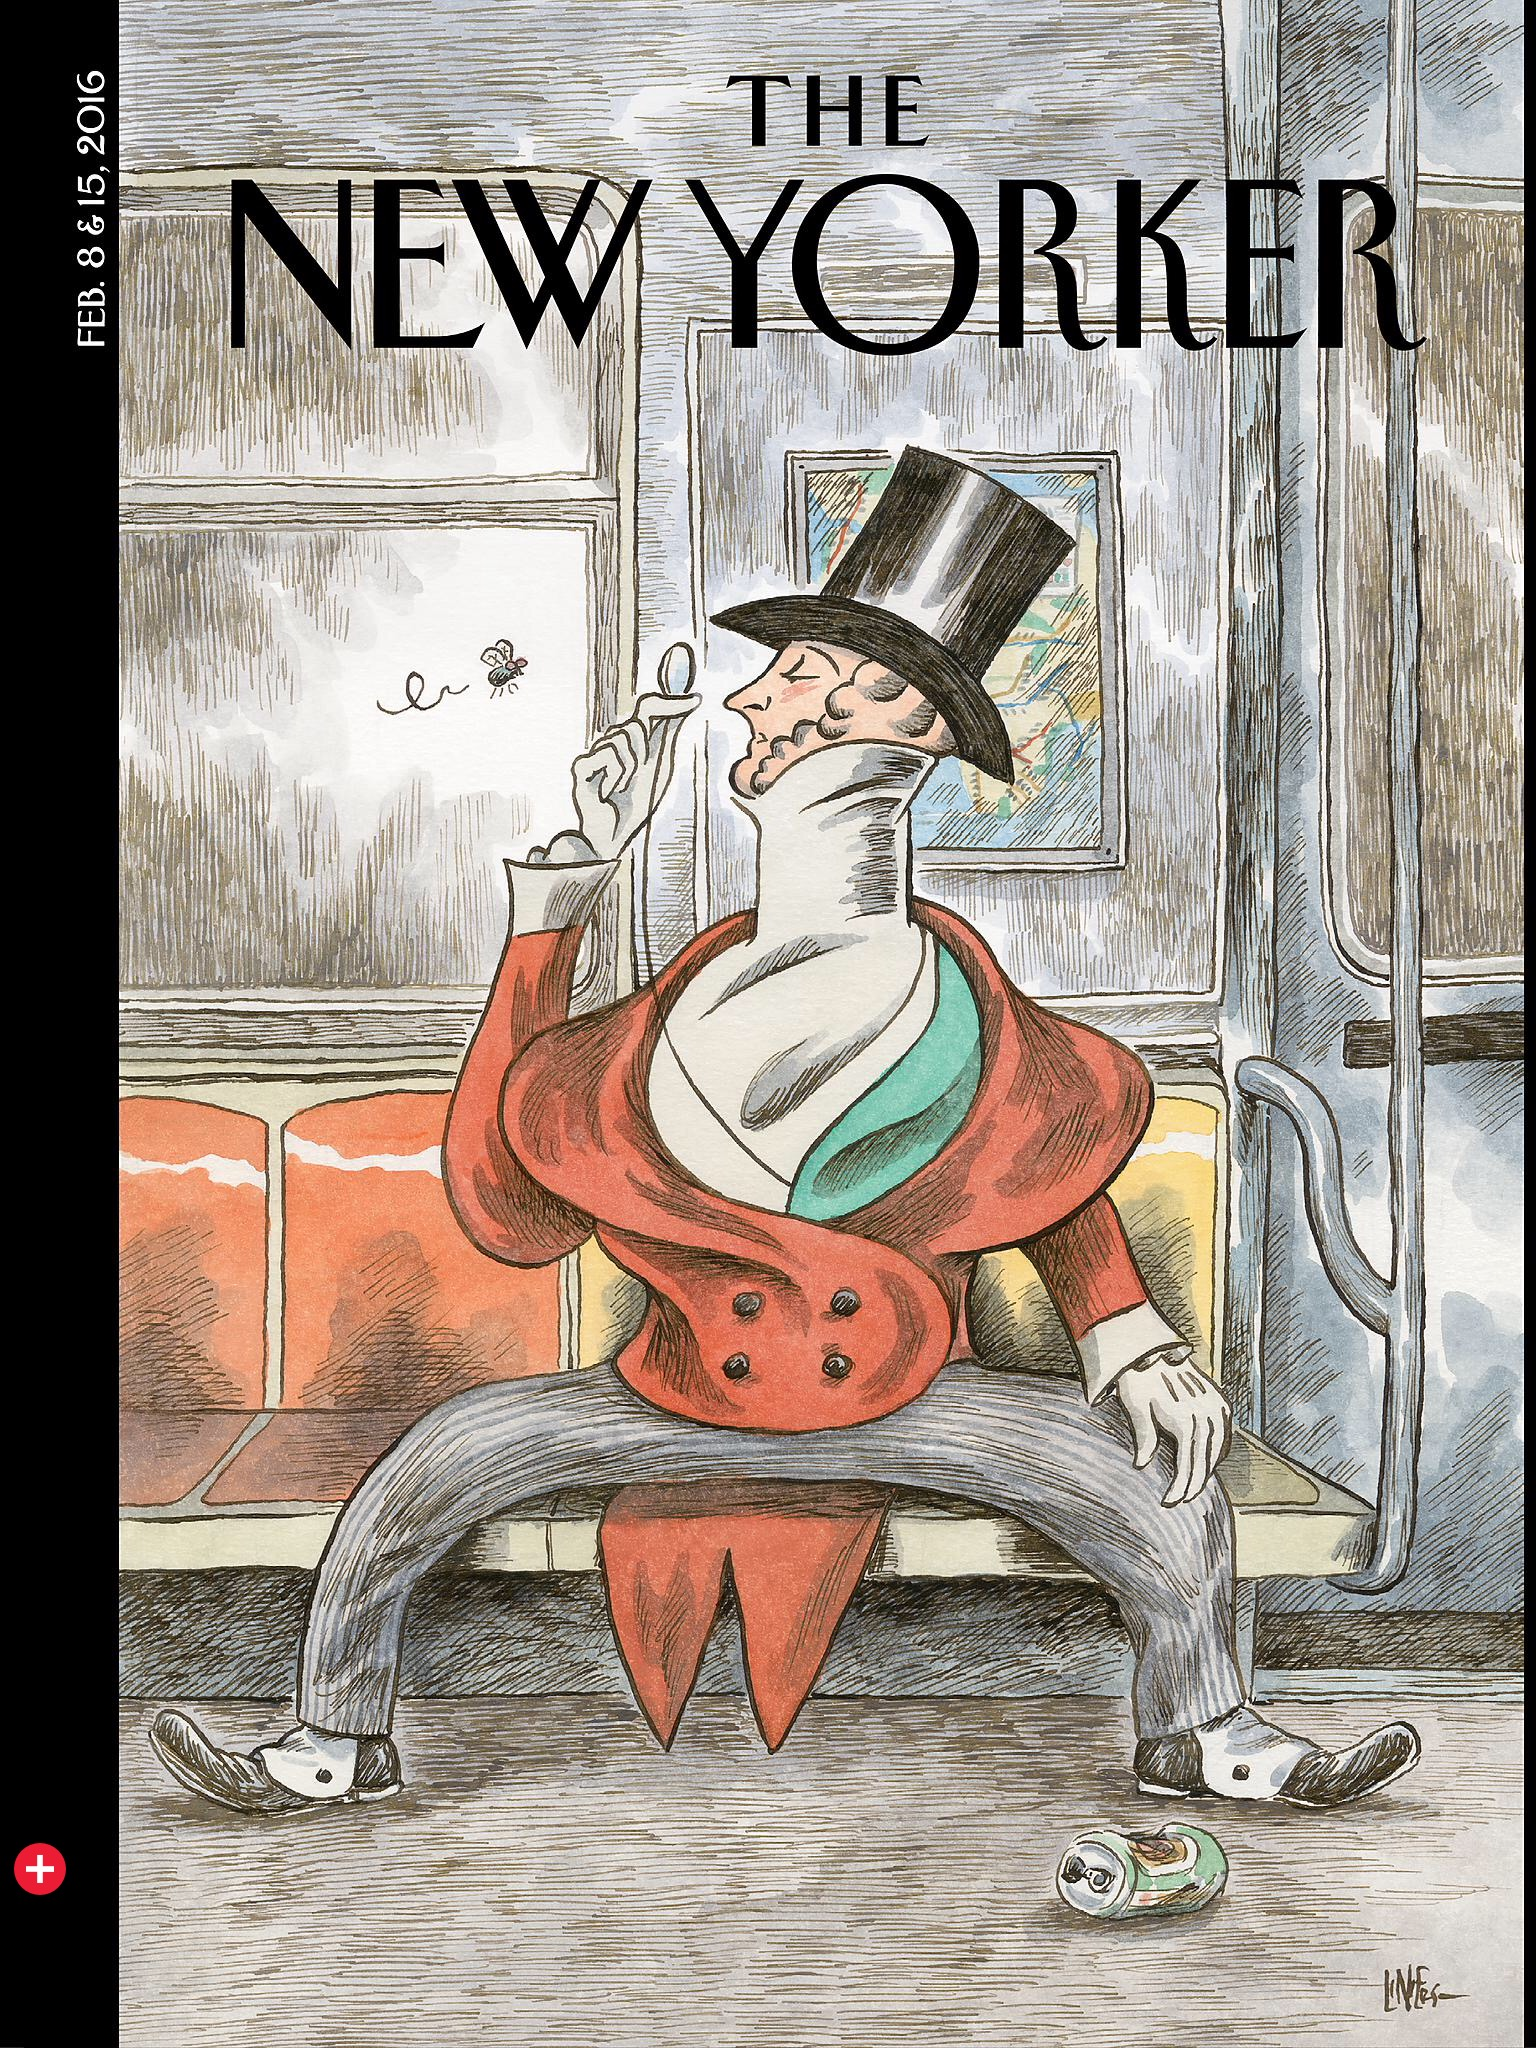 ICYMI: On the latest New Yorker cover, the magazine's mascot is a manspreader. Tsk tsk.